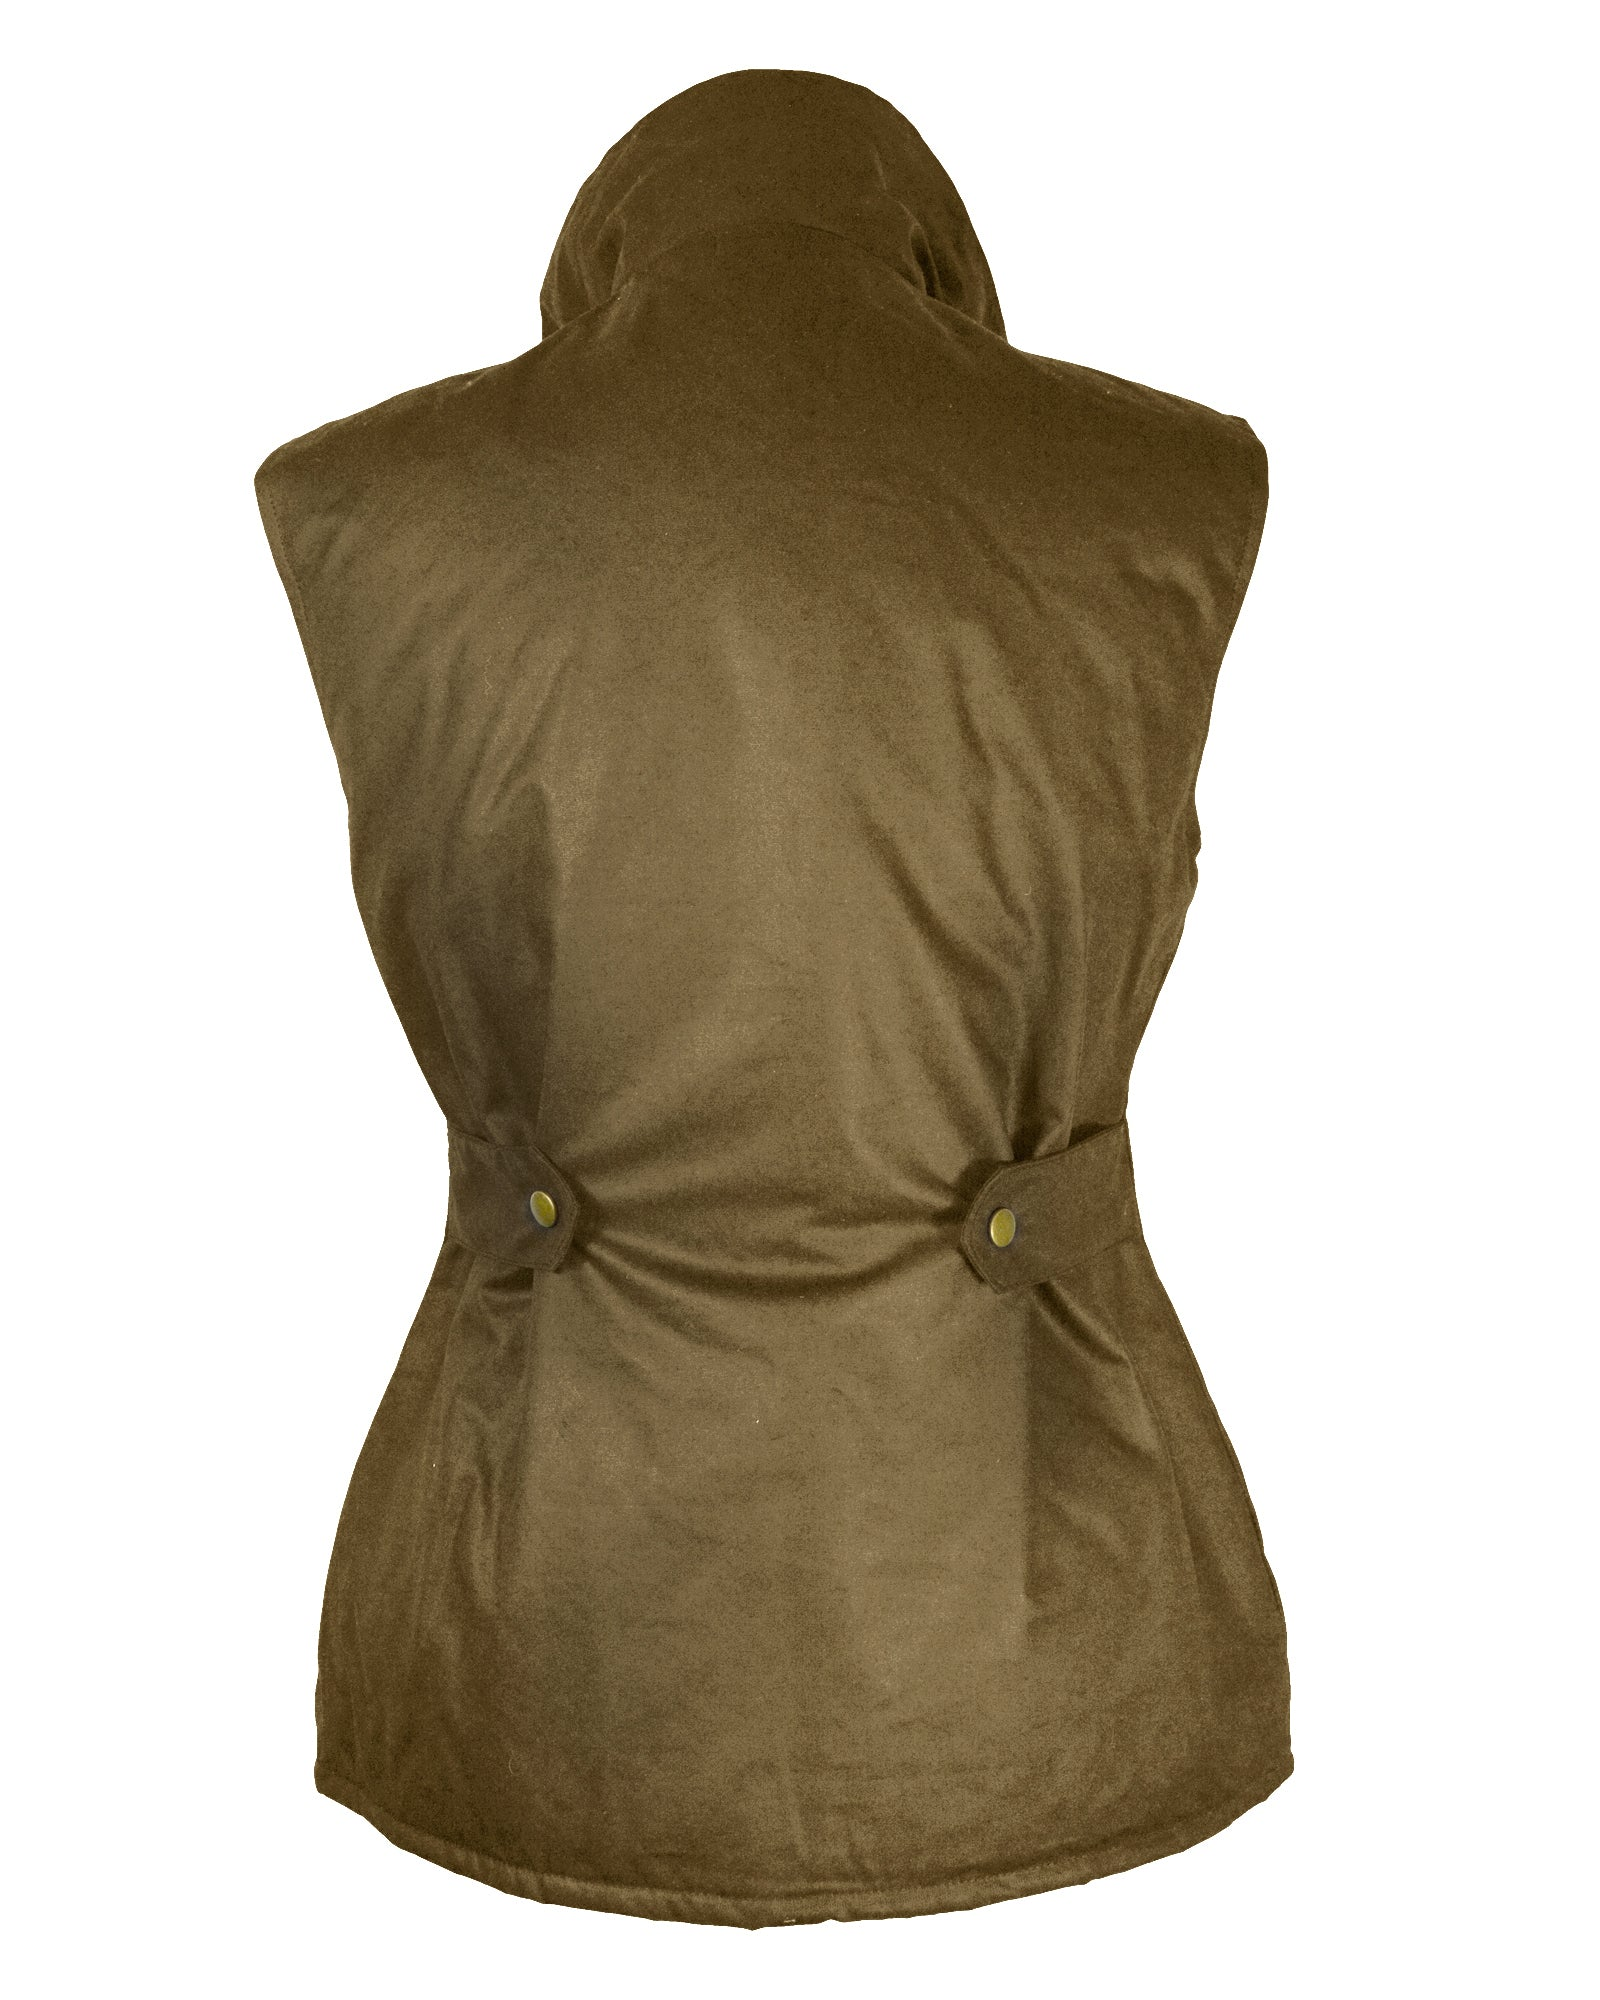 Regents View Womens Fitted Wax Waistcoat Body Warmer - Dark Tan